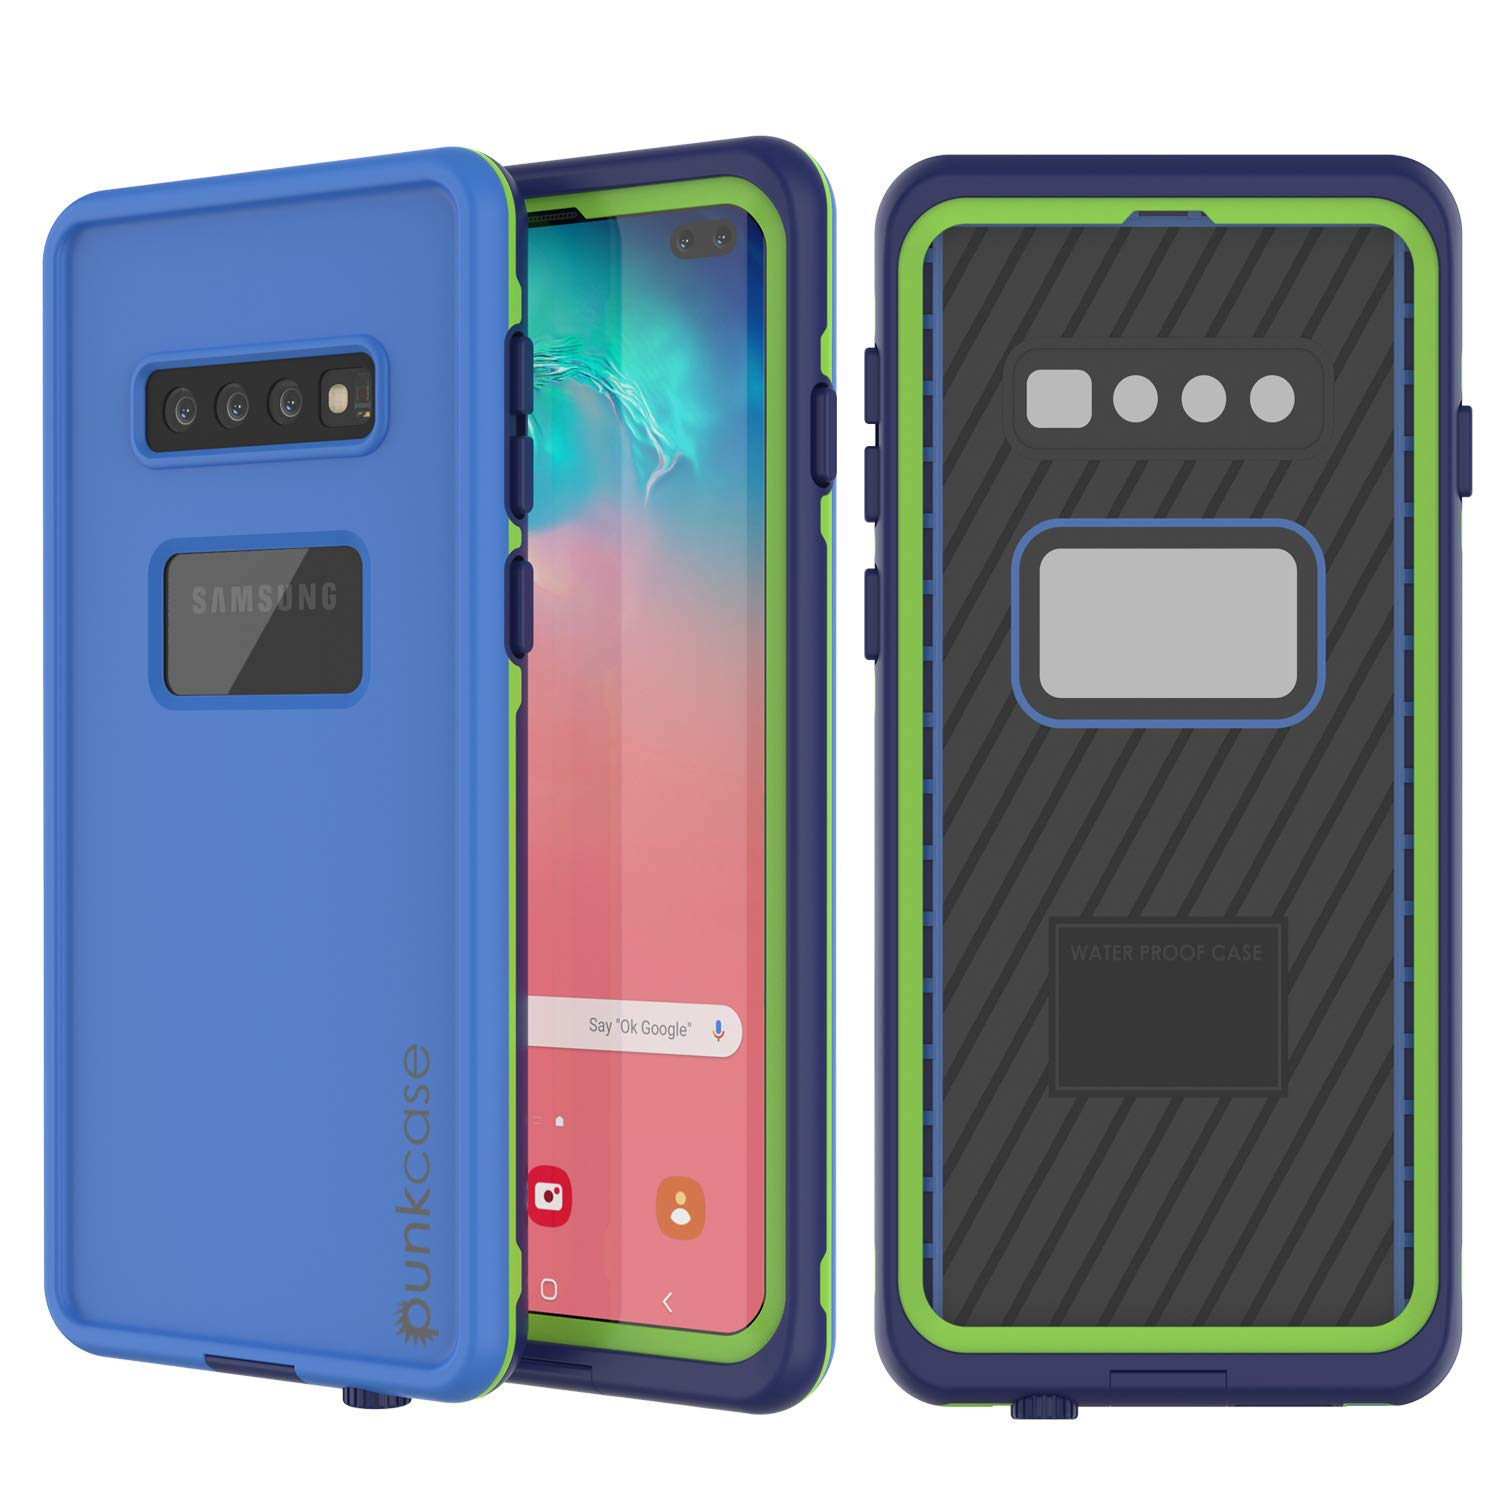 Punkcase S10 Plus Waterproof Case [Aqua Series] [Slim Fit] [IP68 Certified] [Shockproof] [Dirt Proof] Armor Cover W/Built in Screen Protector Compatible W/Samsung Galaxy S10 Plus [Blue]